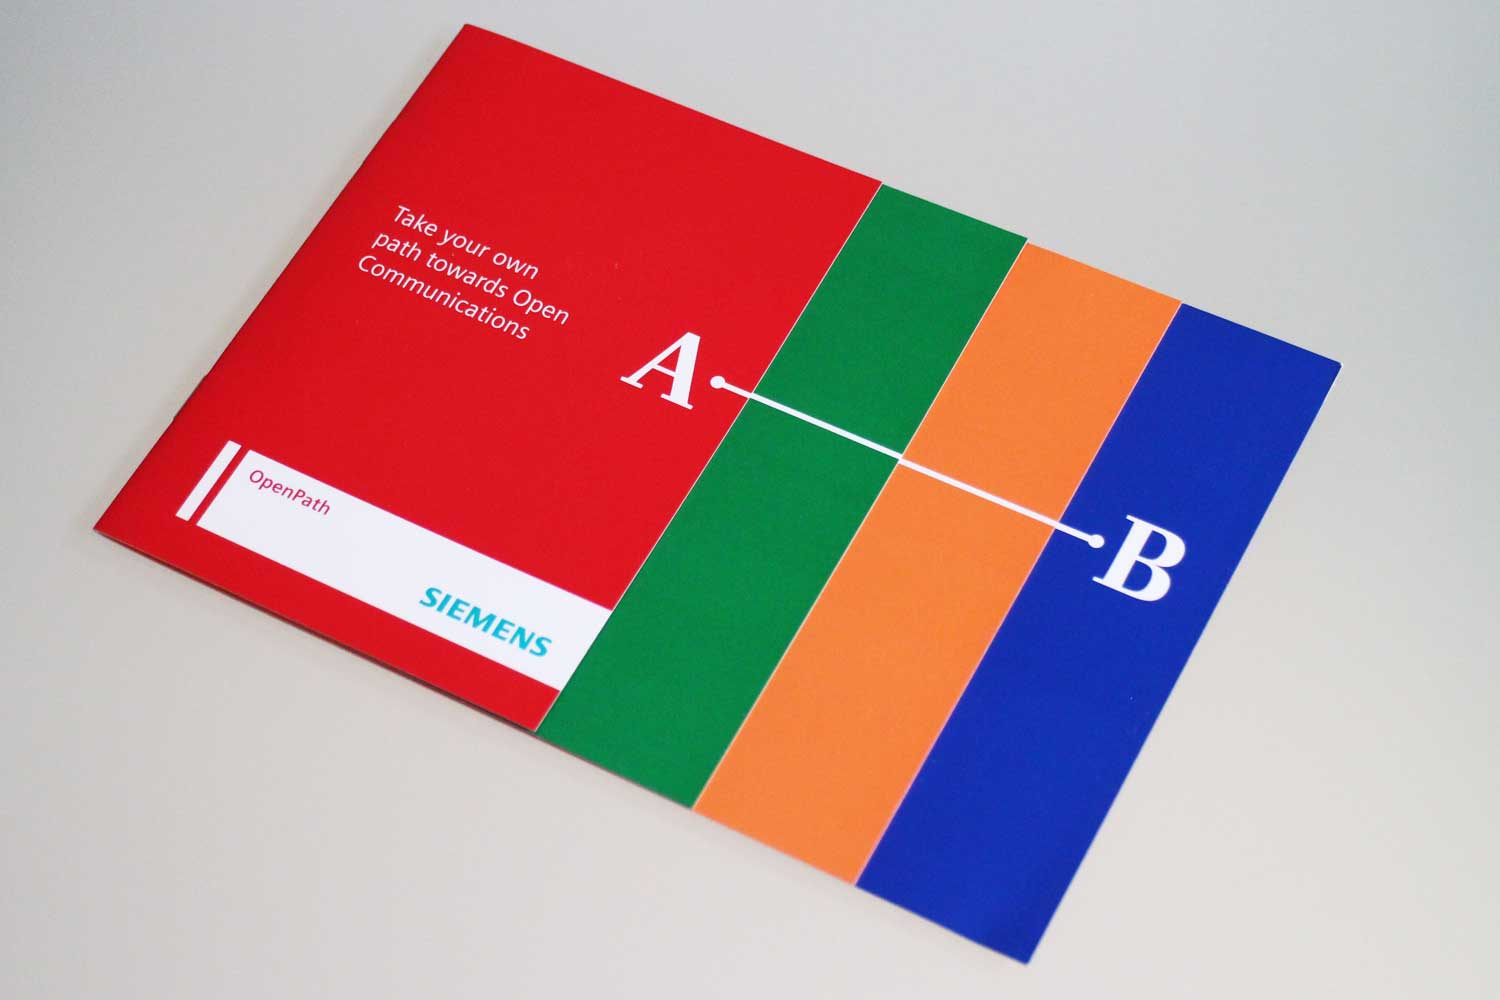 Siemens Open Communications A to B mailer -with stepped front cover